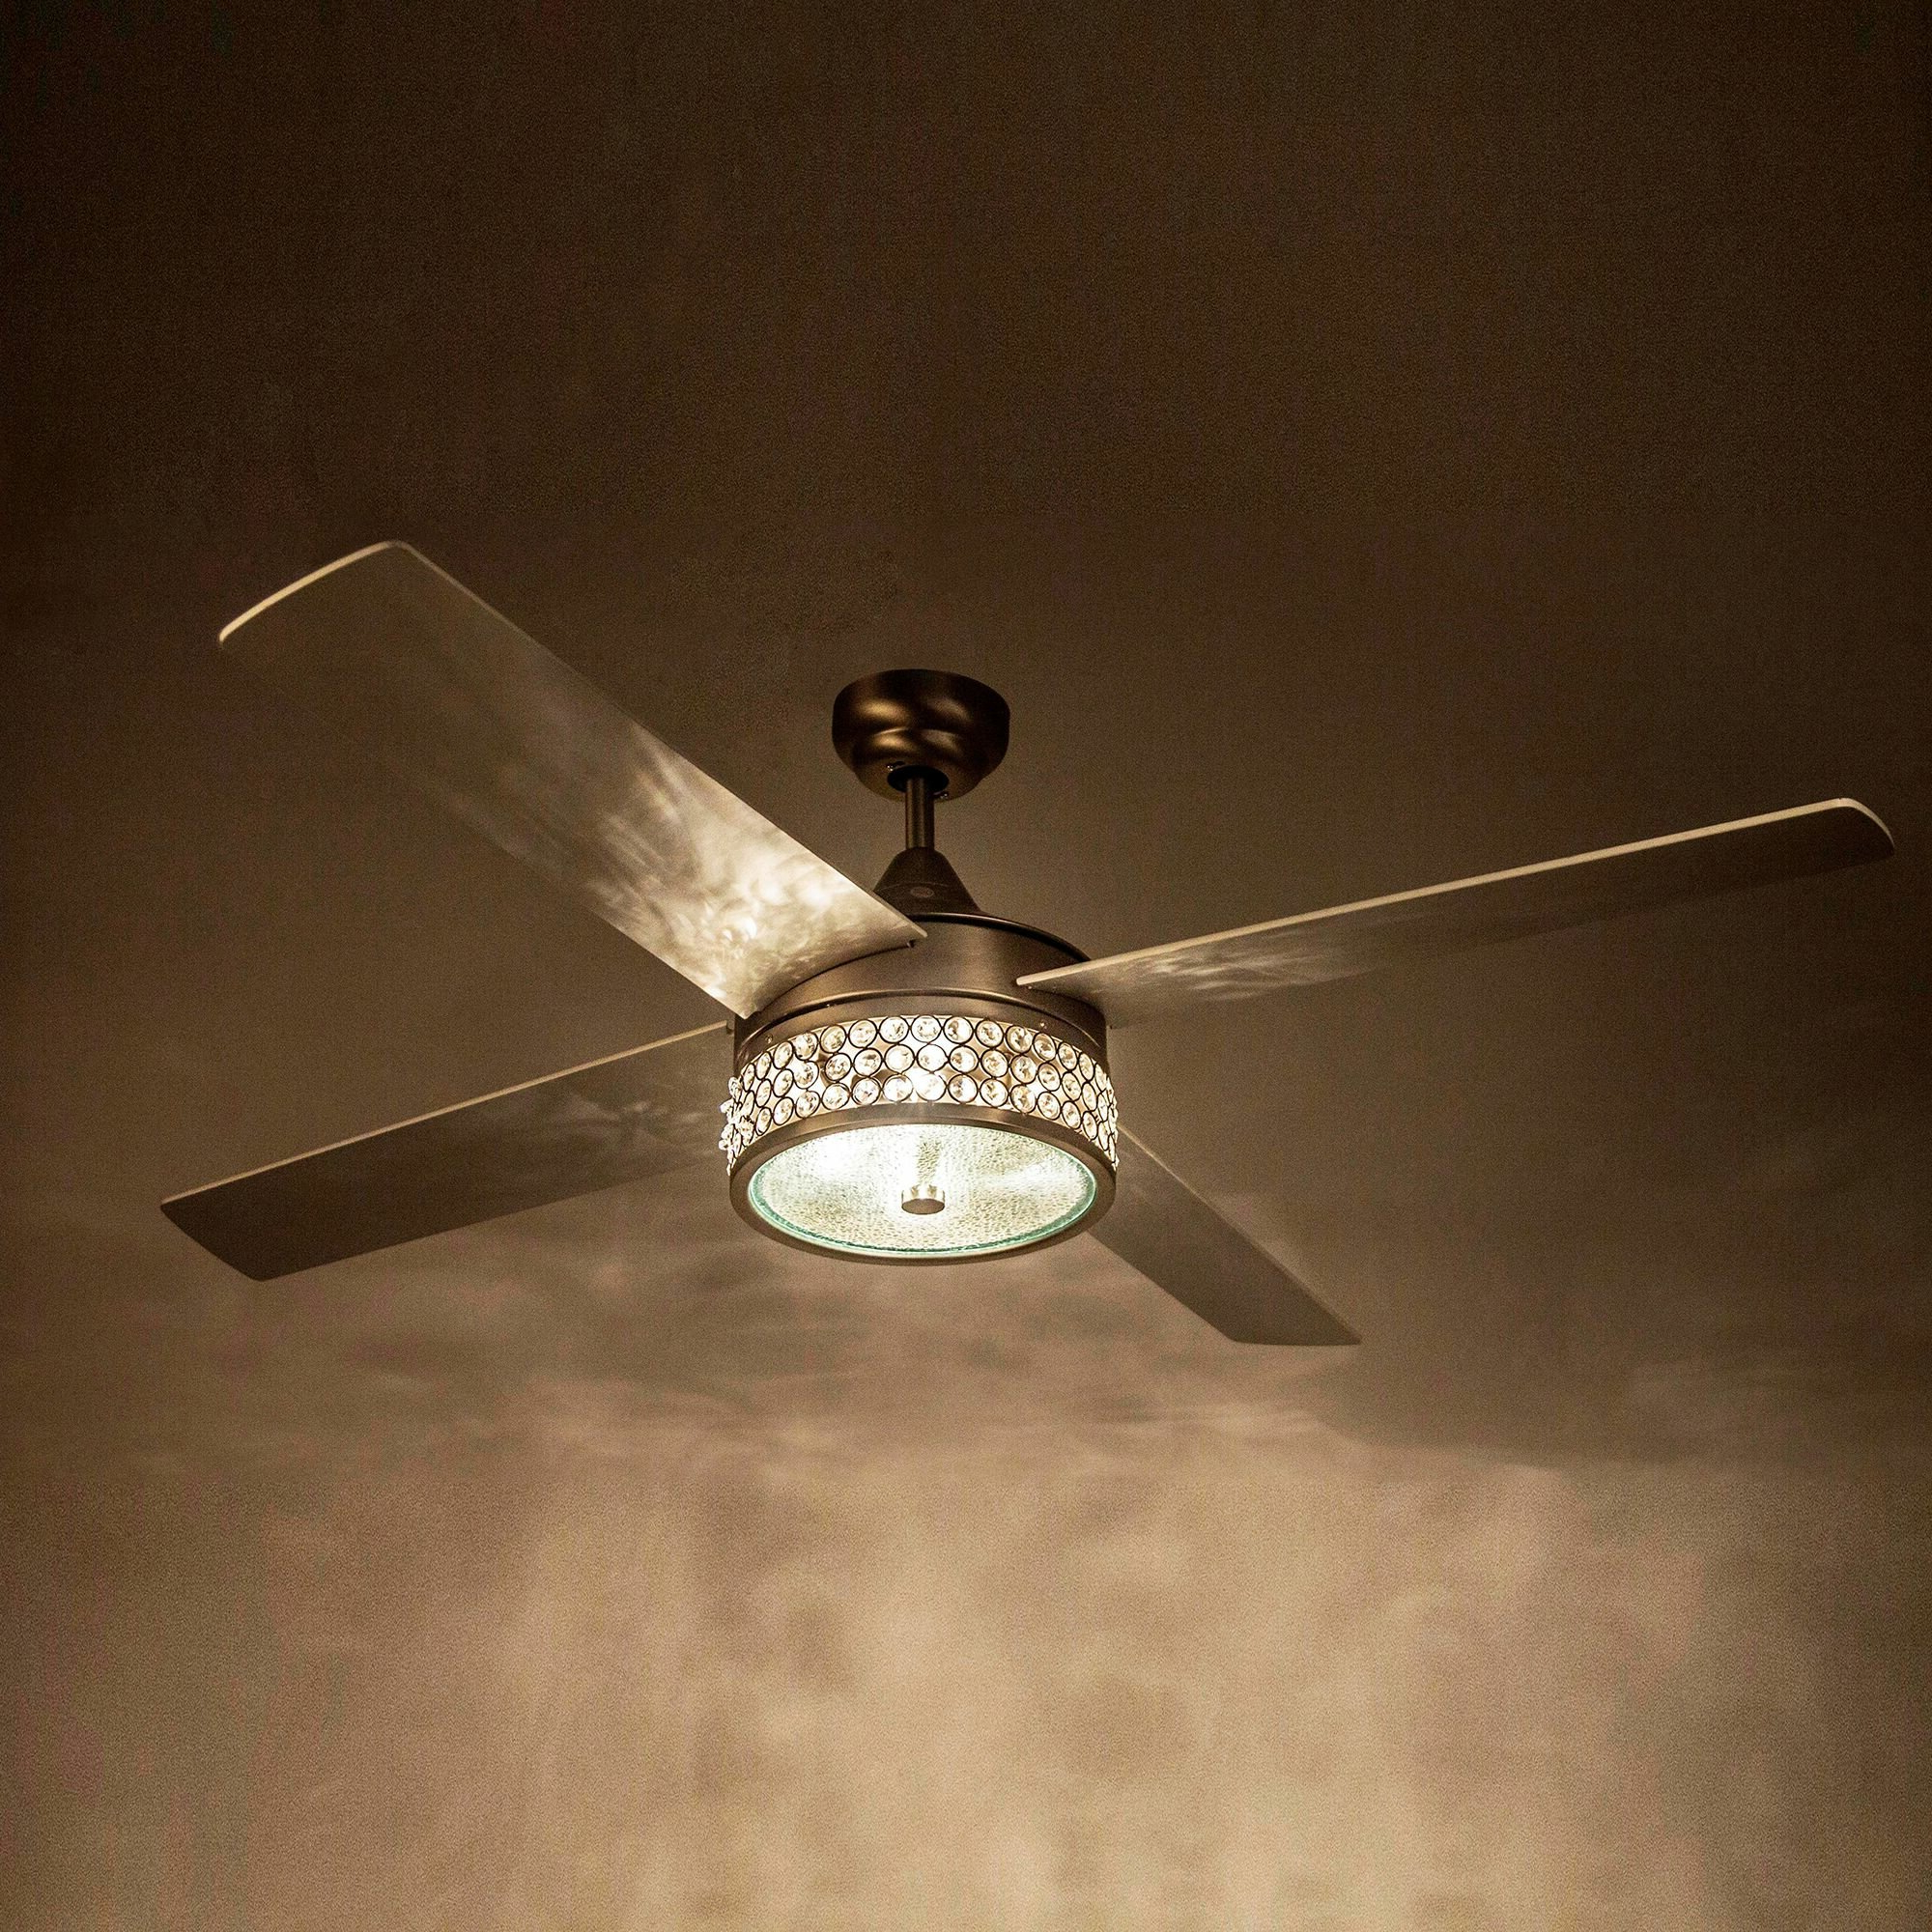 Marchand Crystal 4 Blade Ceiling Fan With Remote, Light Kit Included Pertaining To Trendy Cason 4 Blade Ceiling Fans (View 2 of 20)